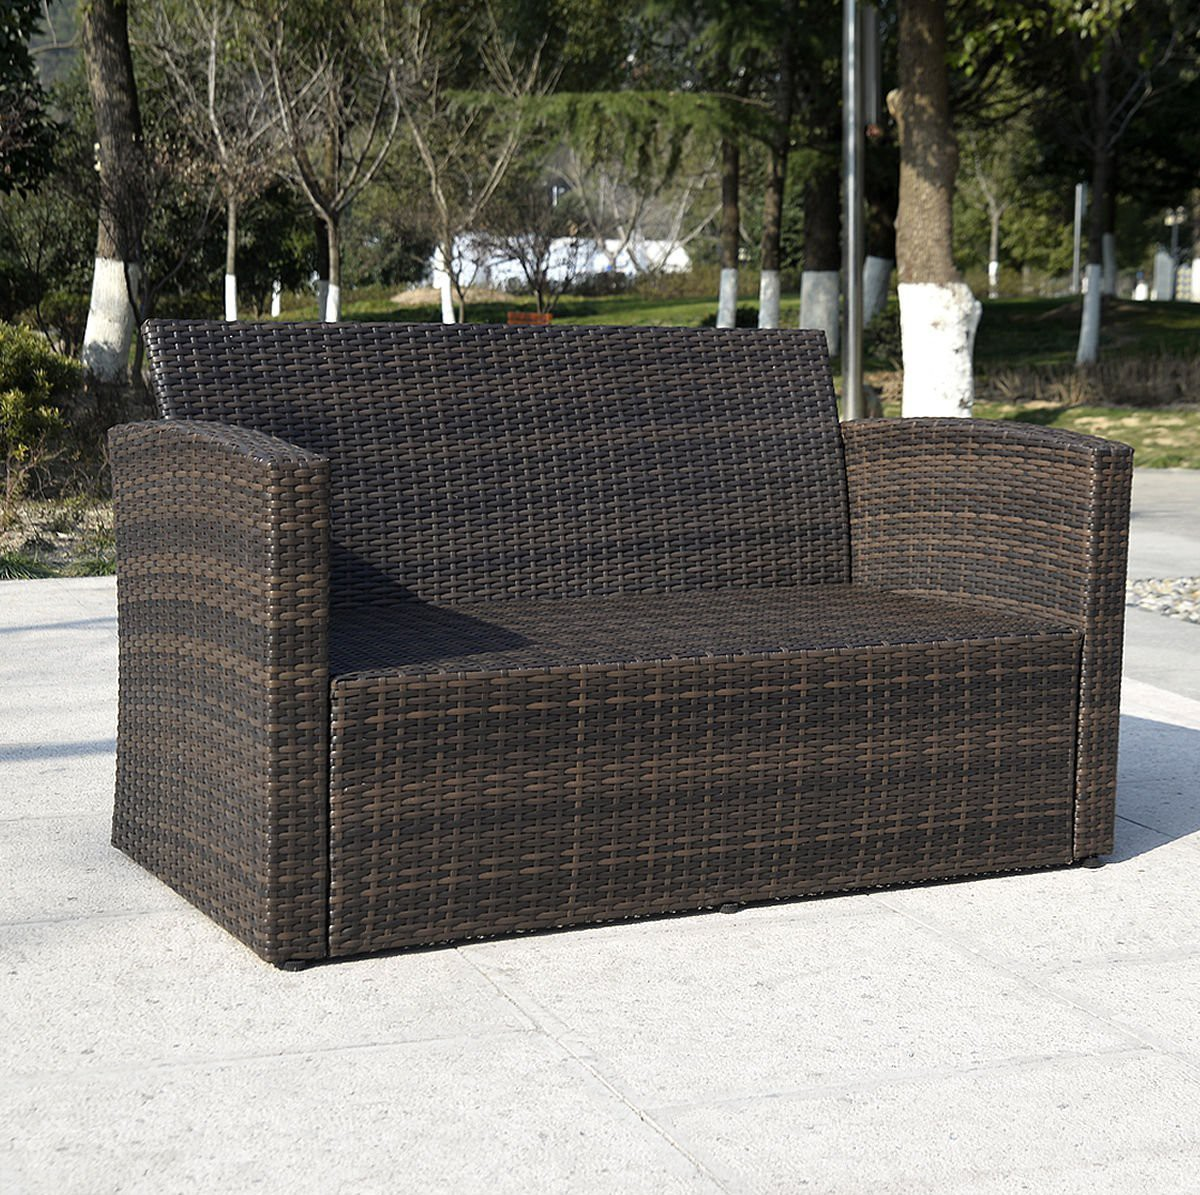 rattan sofa outdoor pc outdoor patio sofa set sectional. Black Bedroom Furniture Sets. Home Design Ideas